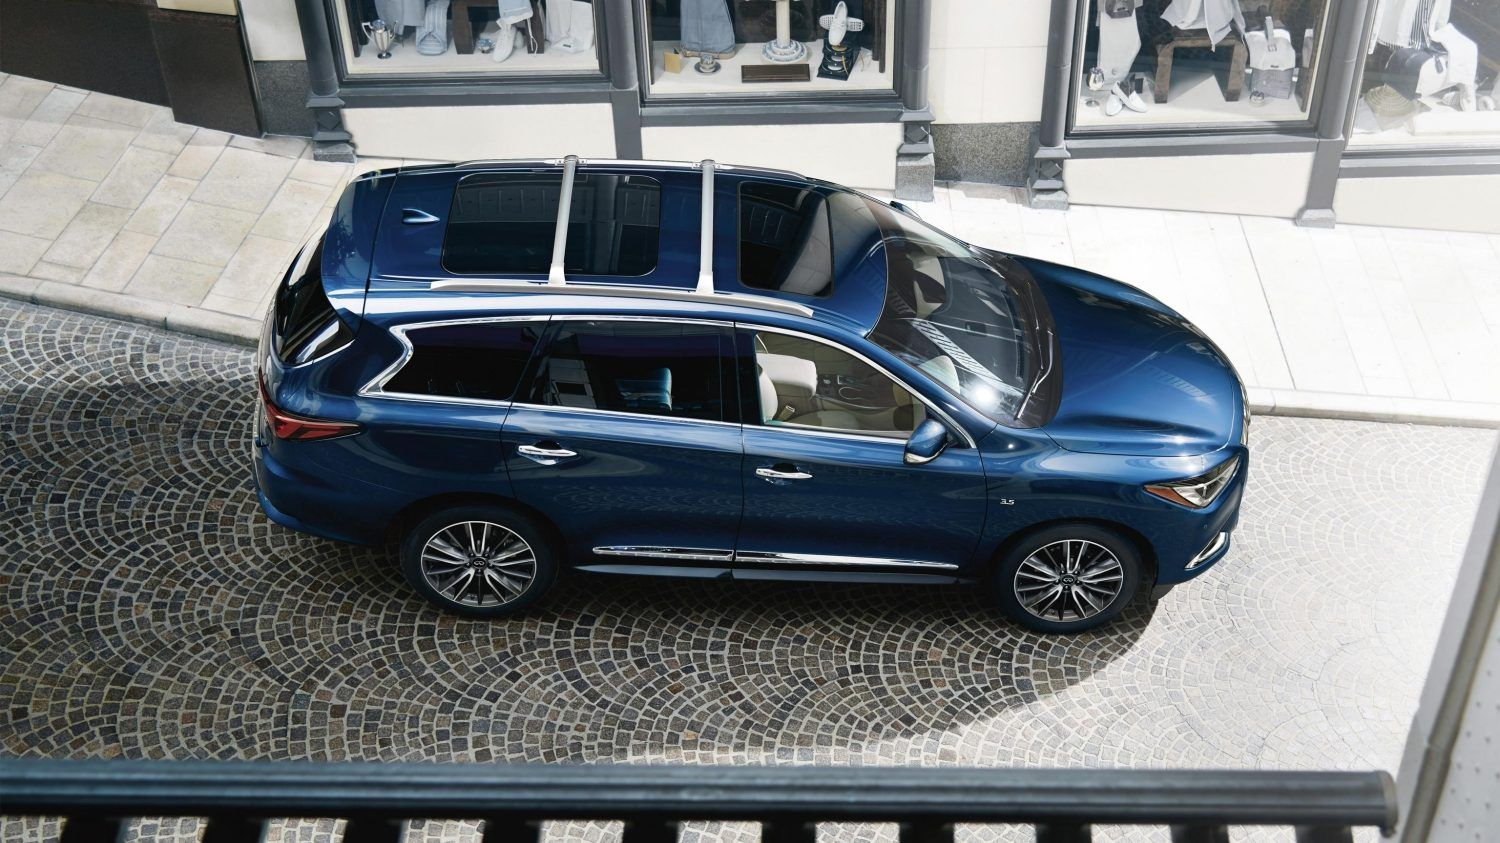 2019 INFINITI QX60 Luxury Crossover Exterior Available